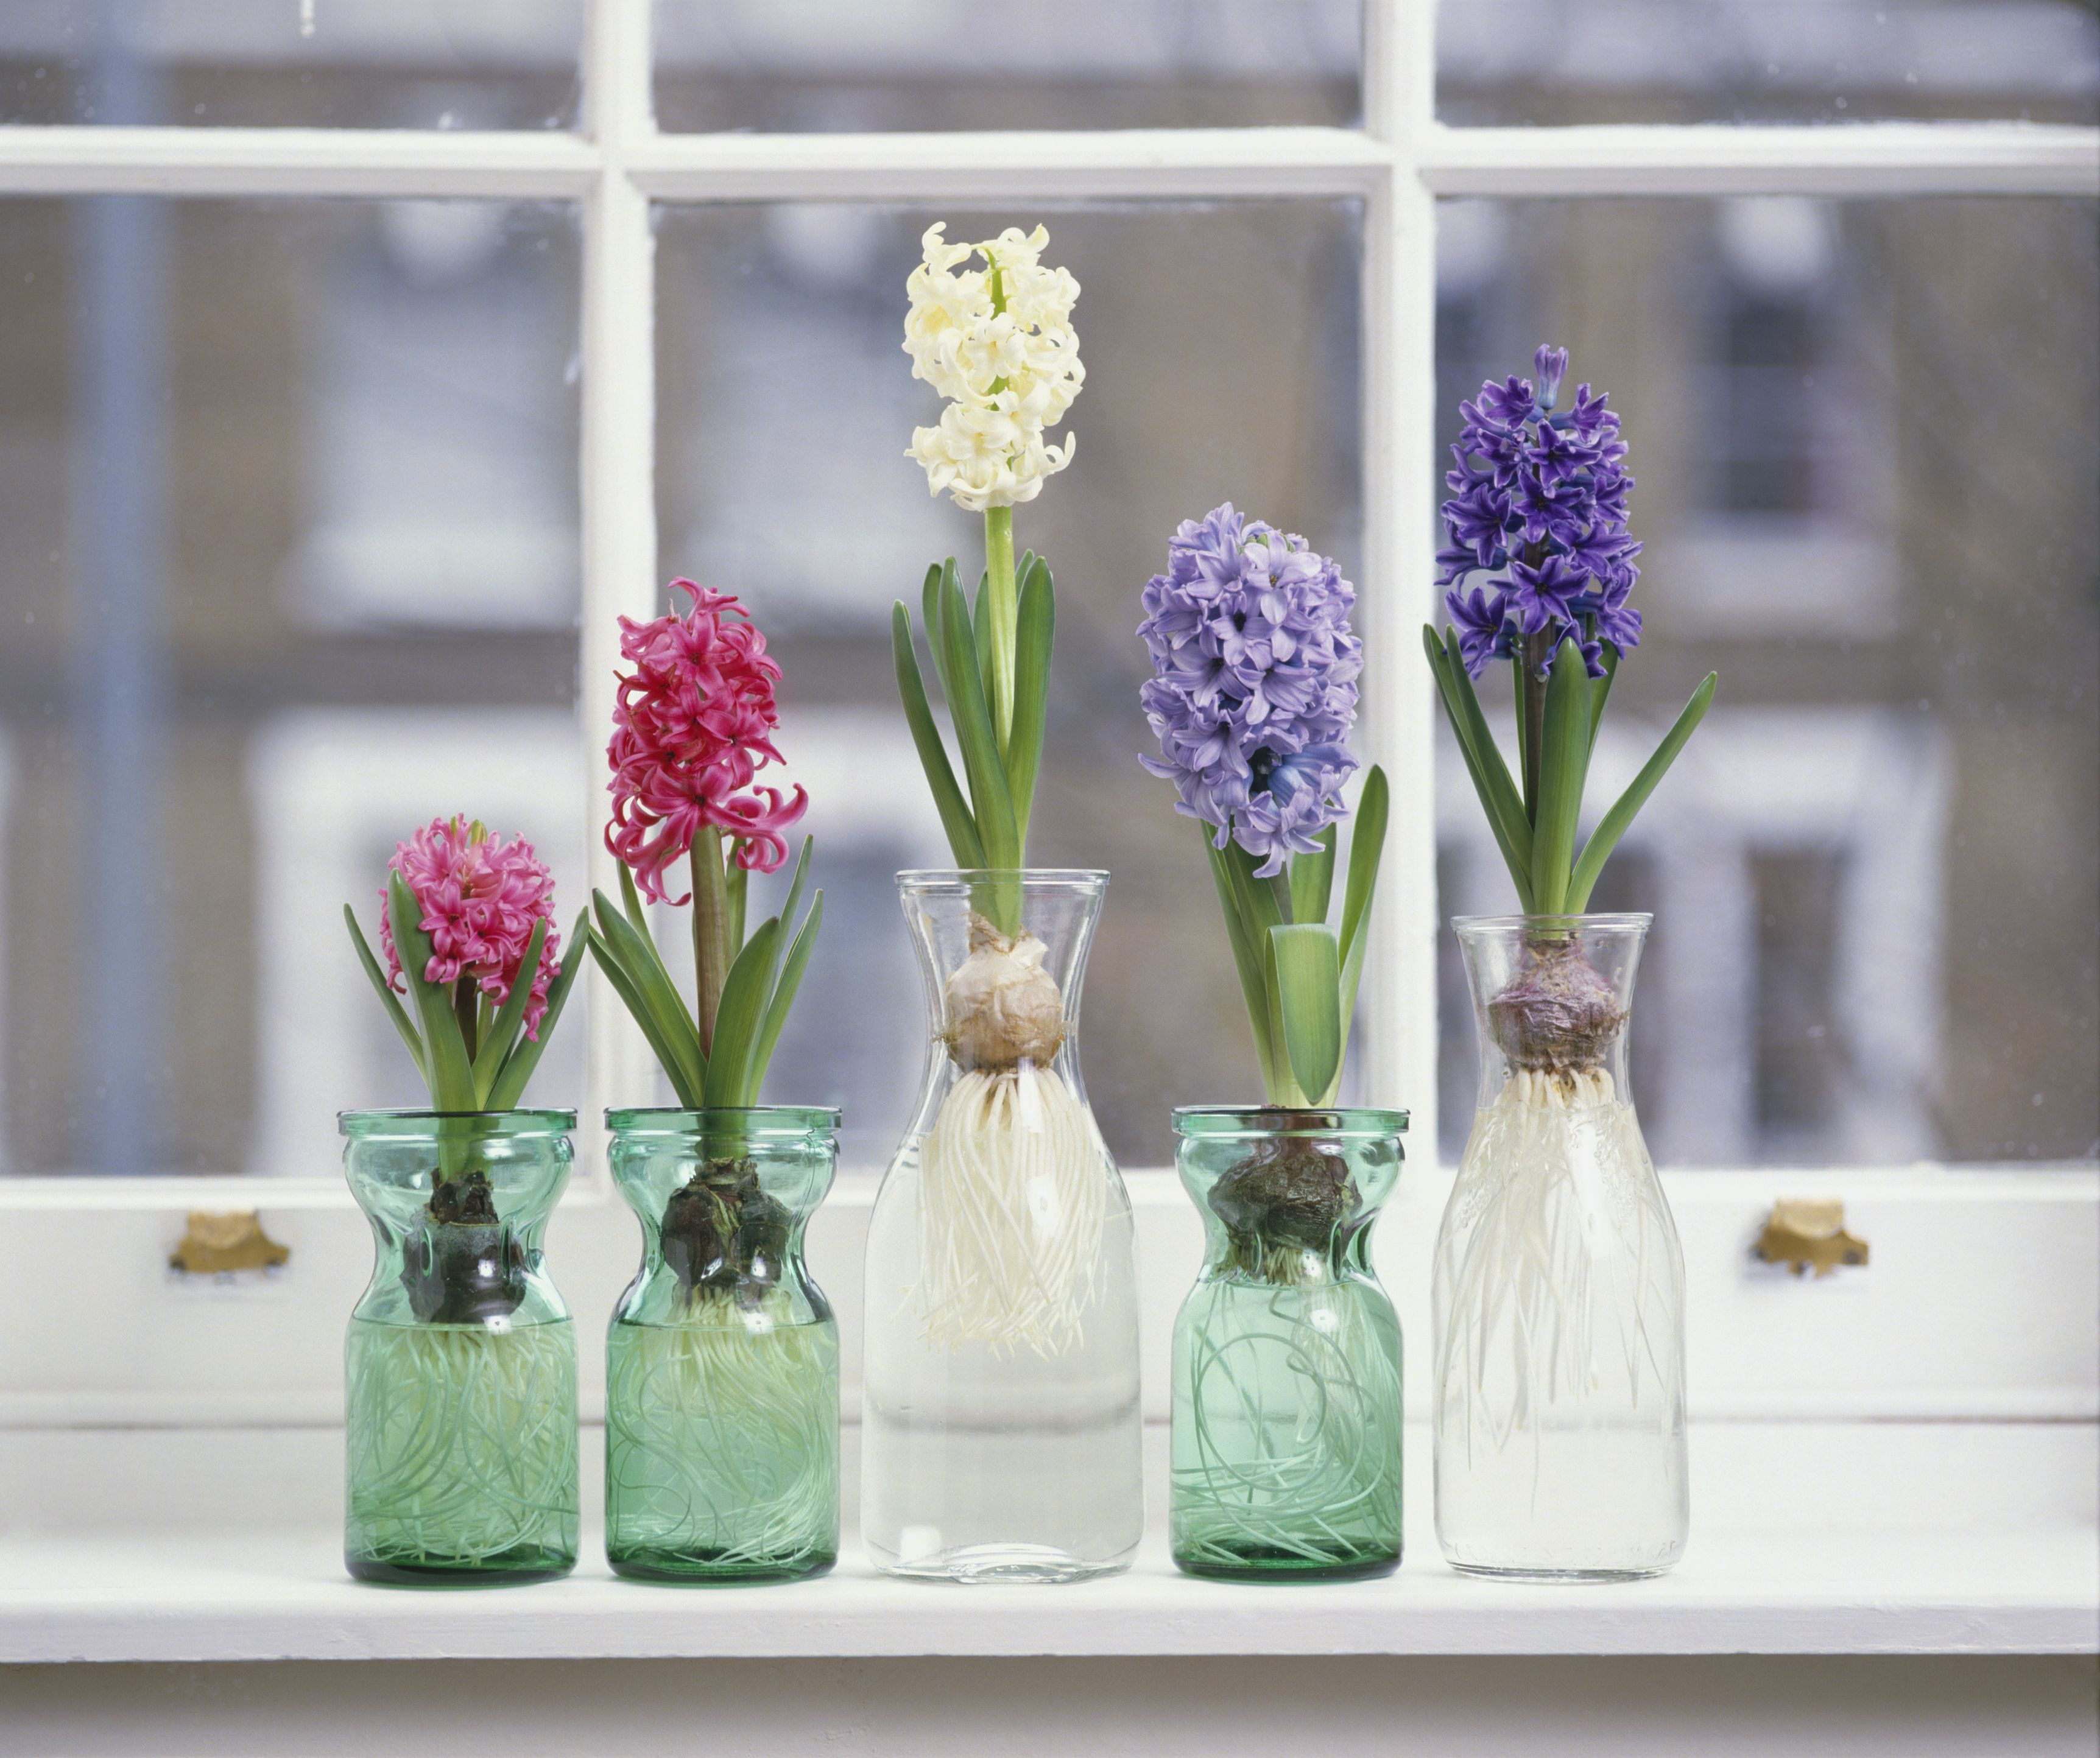 How to grow hyacinth flowers indoors reviewsmspy